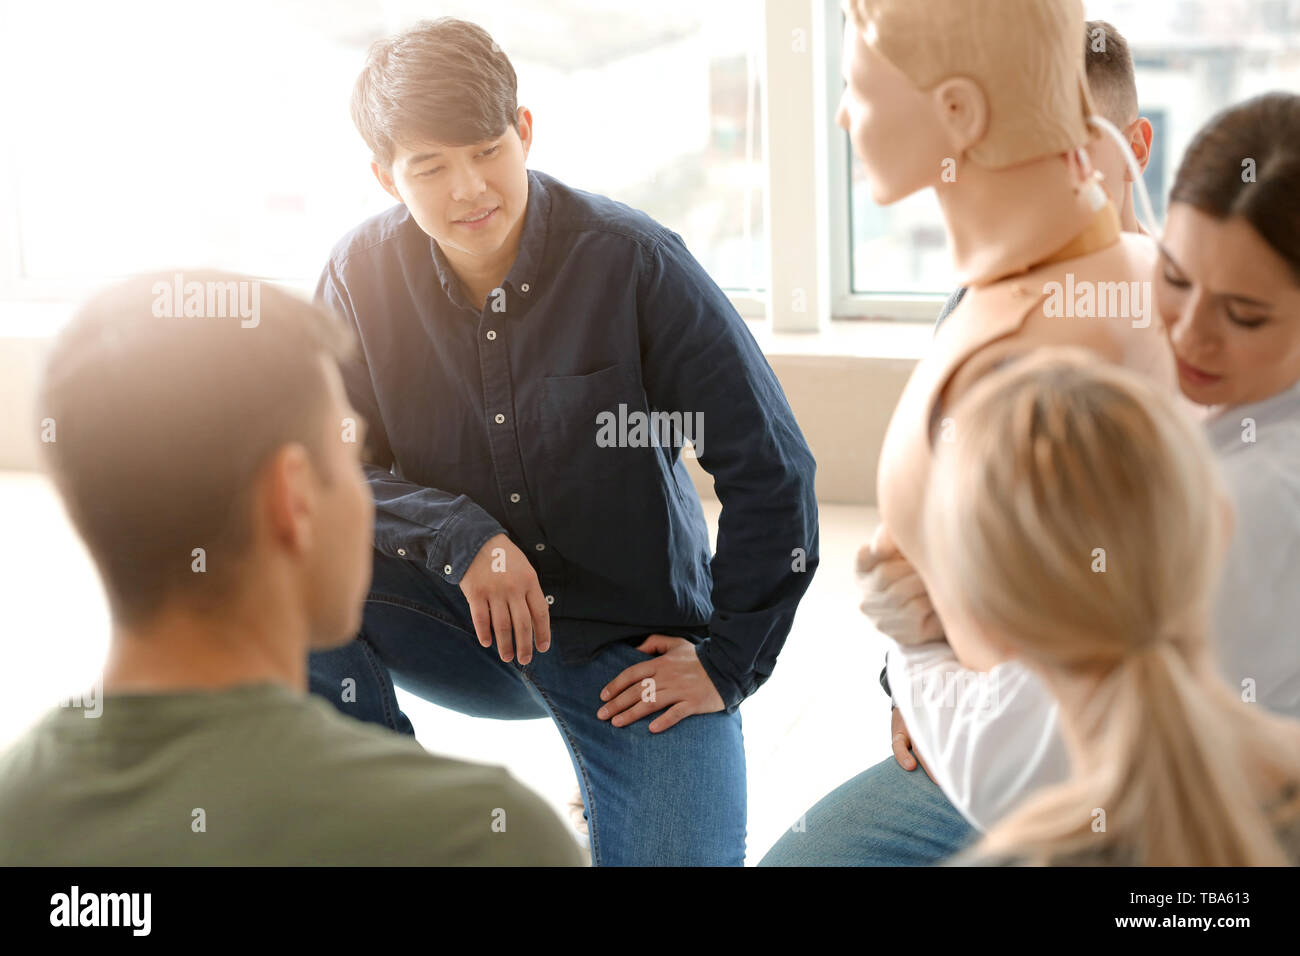 Instructor demonstrating what to do in case of choking at first aid training course - Stock Image